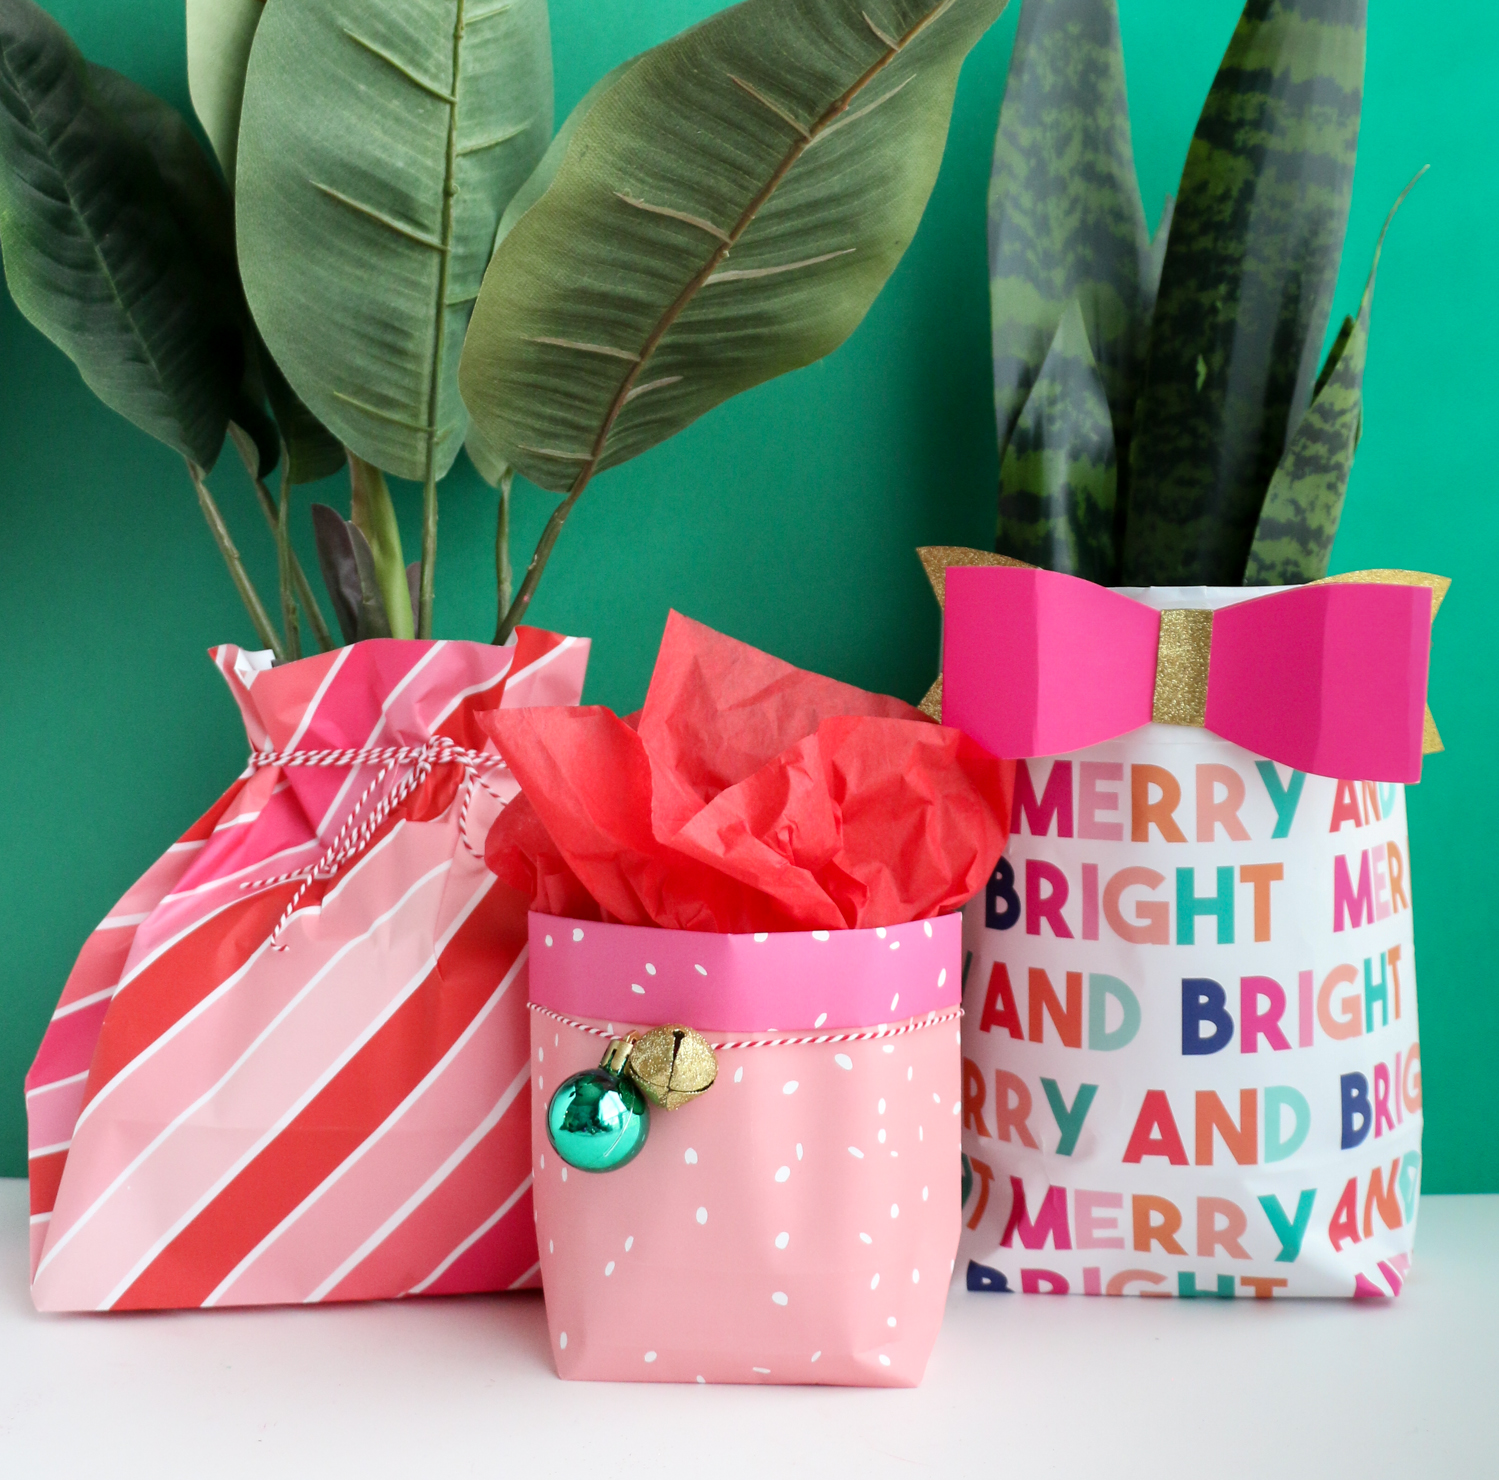 How to make a gift bag out of wrapping paper